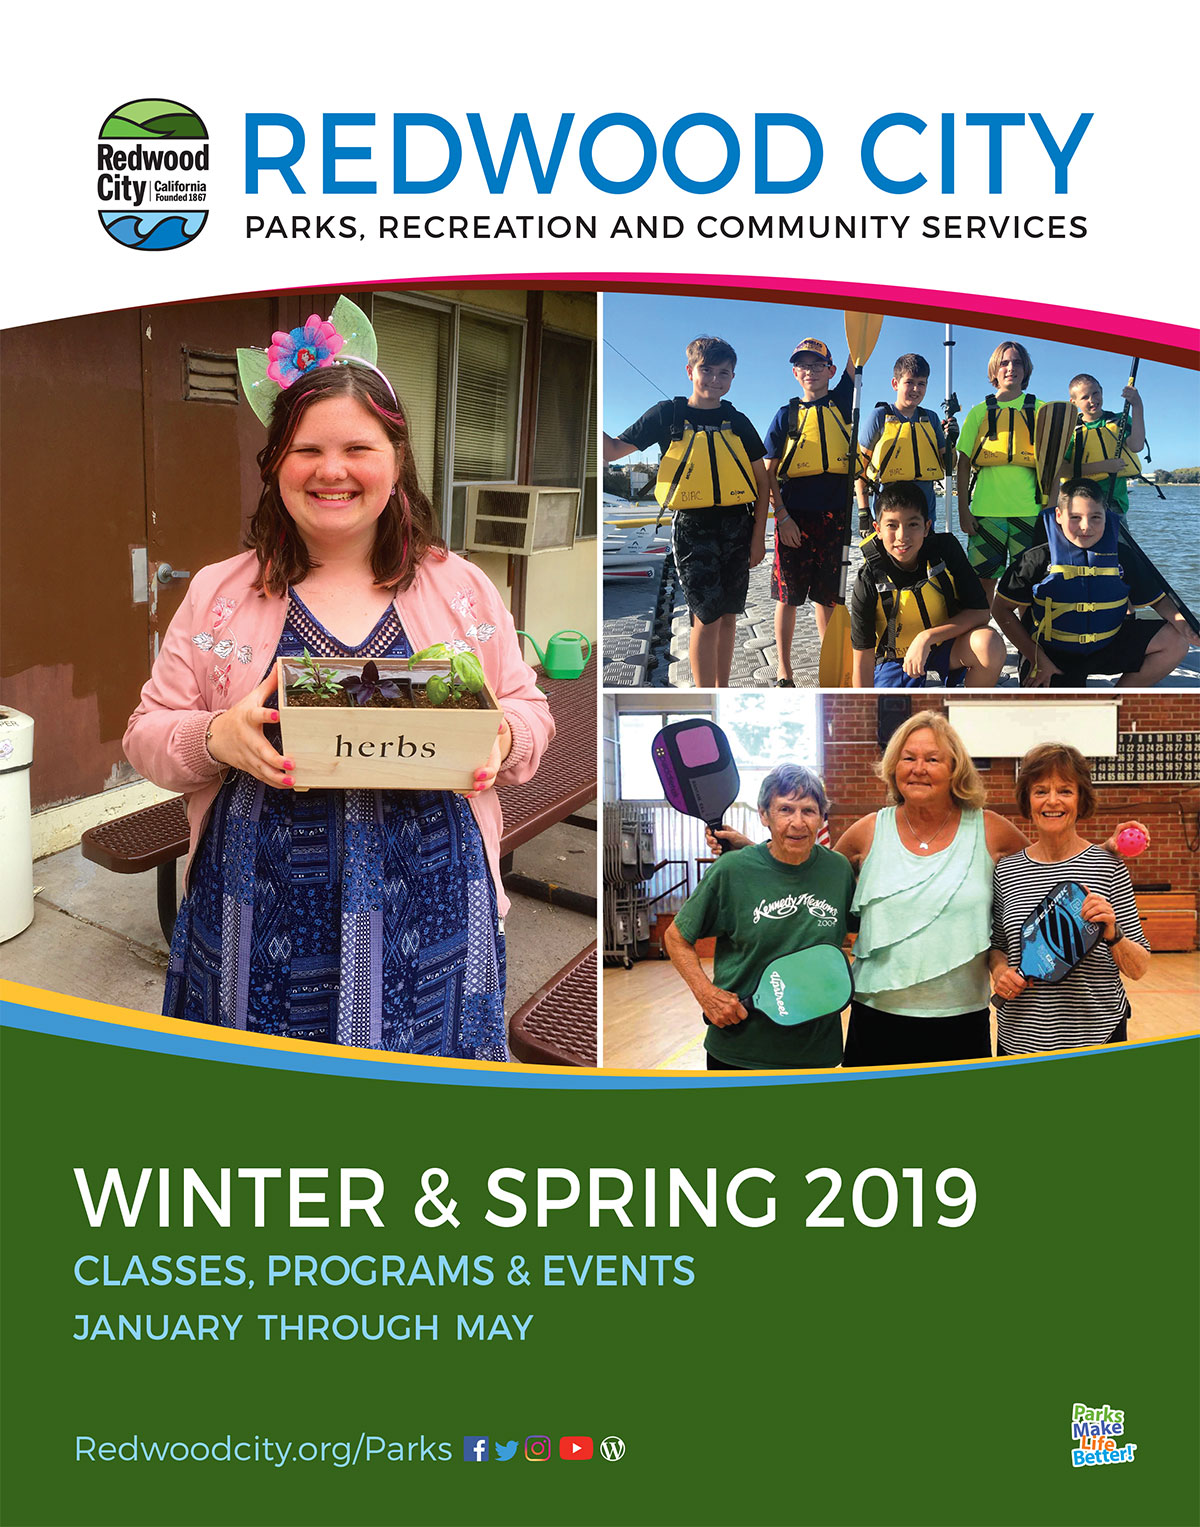 RWC-WinterSpring-FrontCover